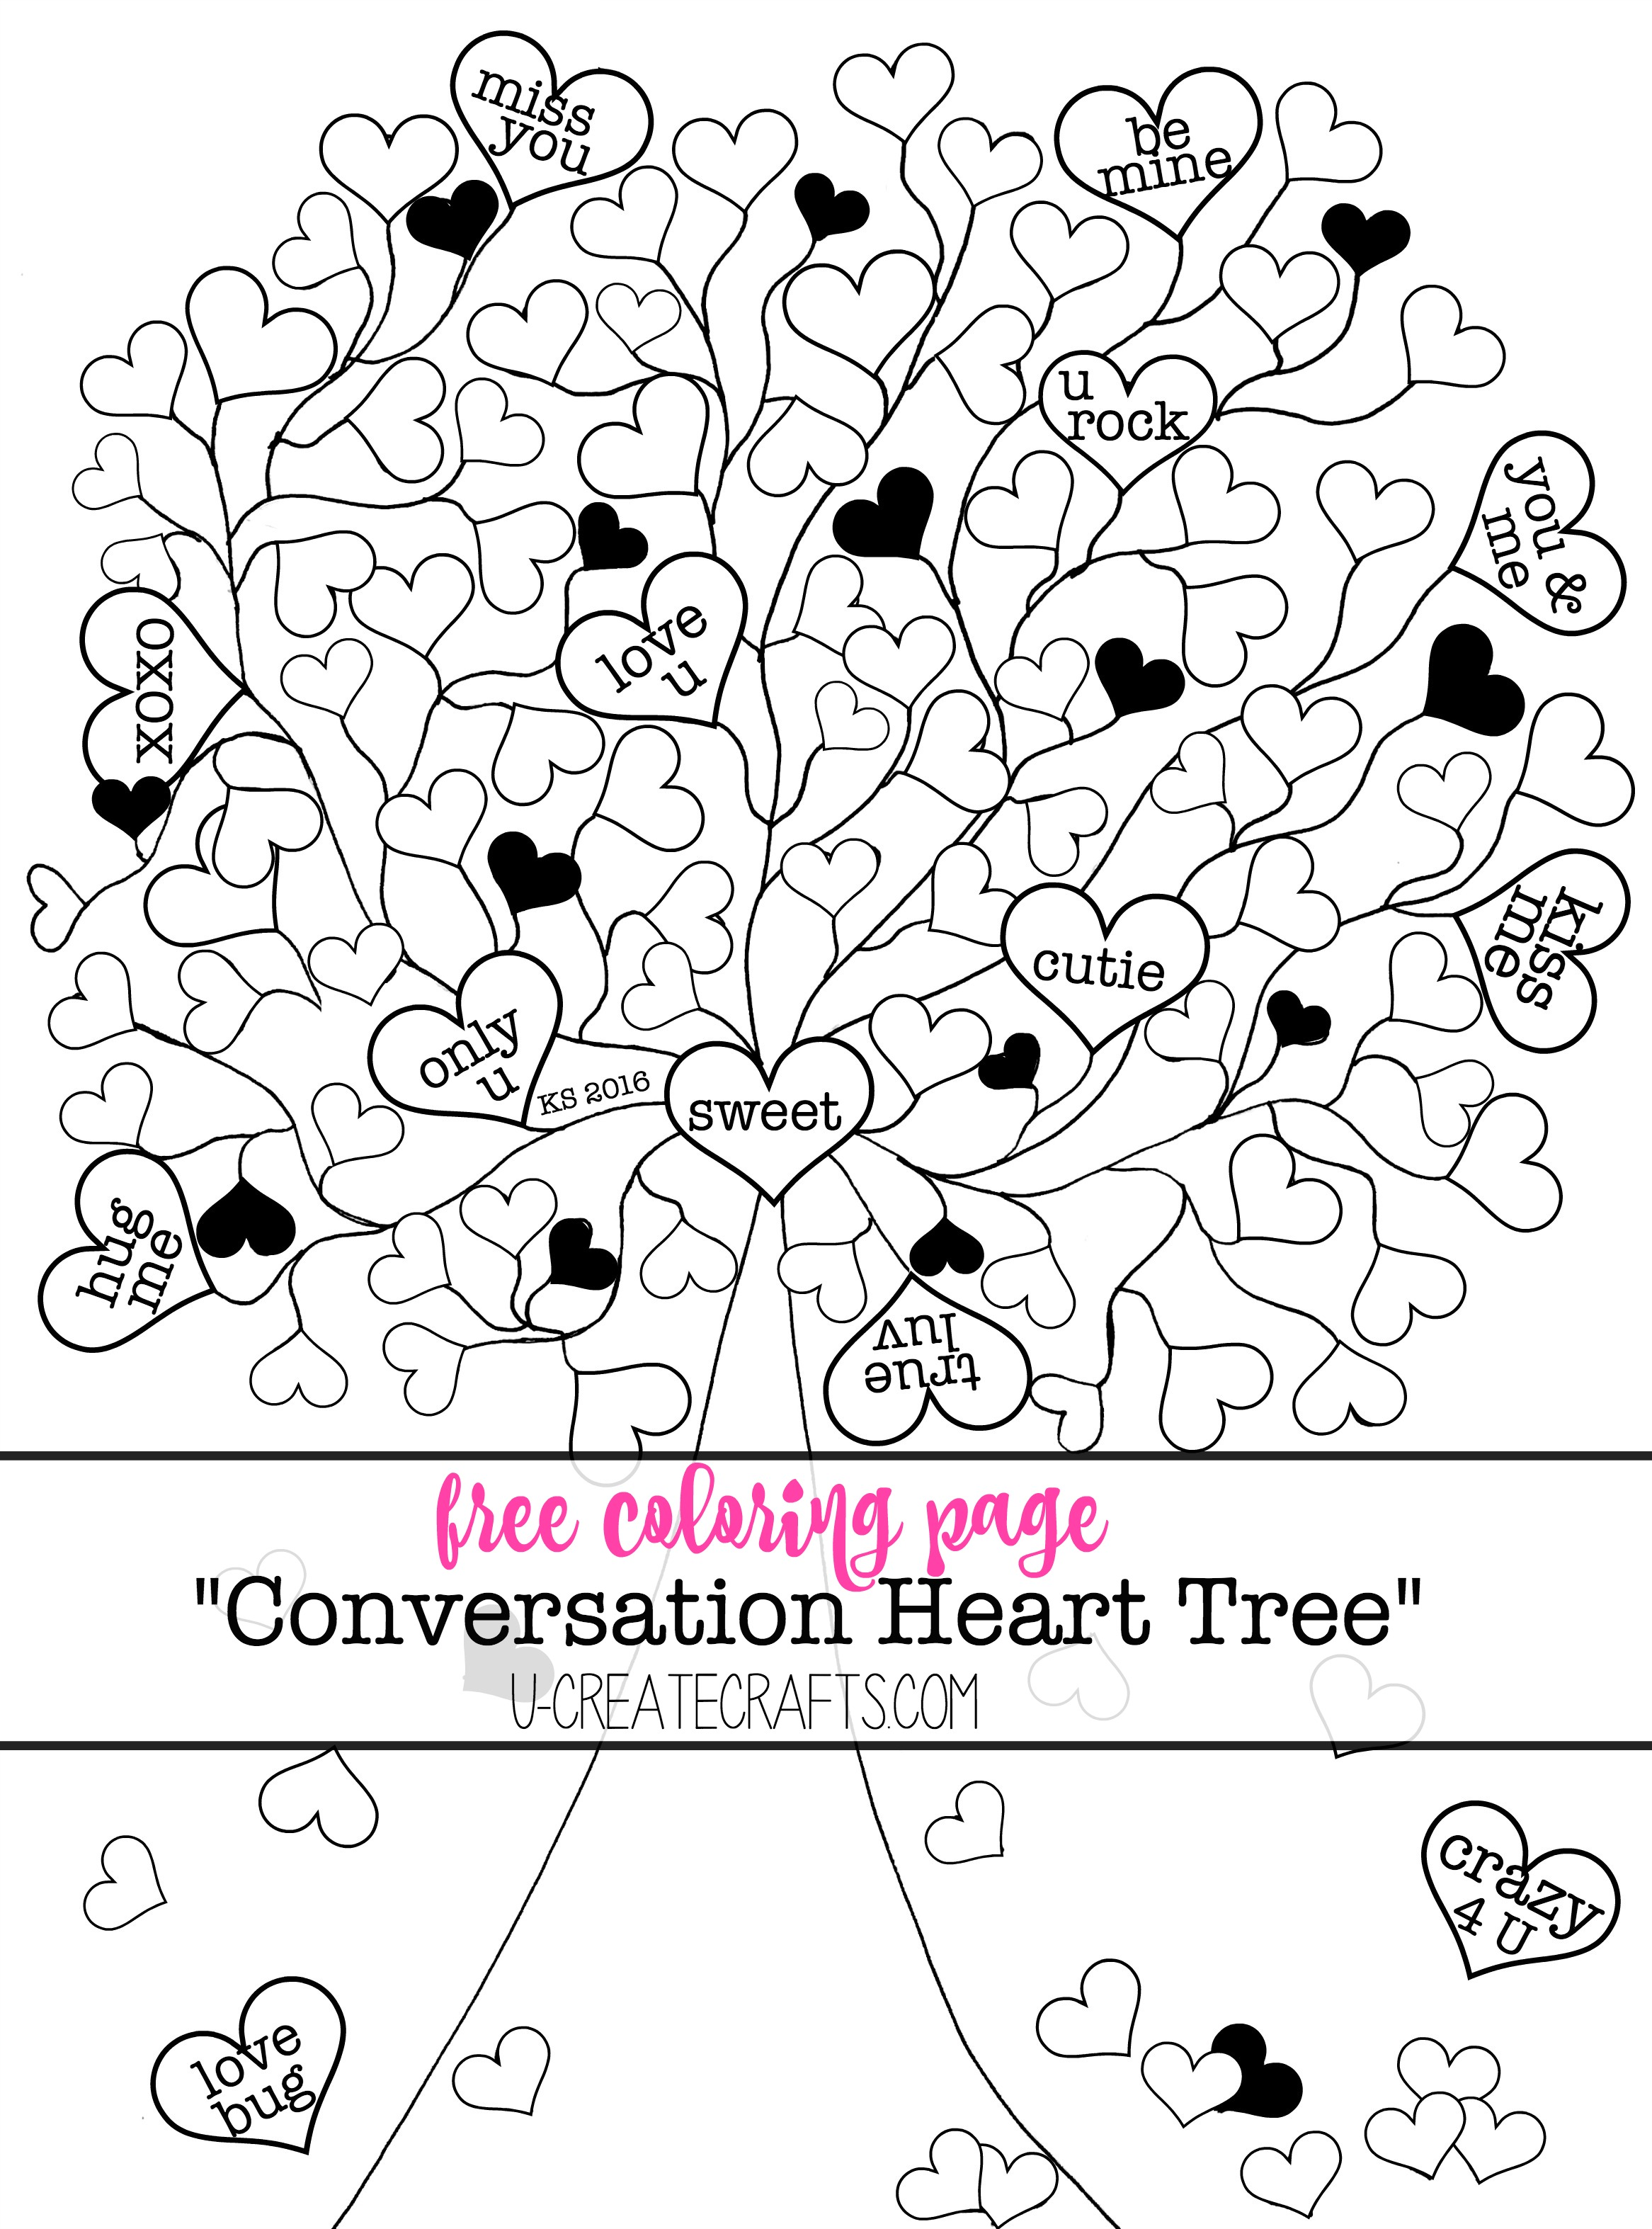 Valentine Conversation Heart Tree Coloring Pages - U Create